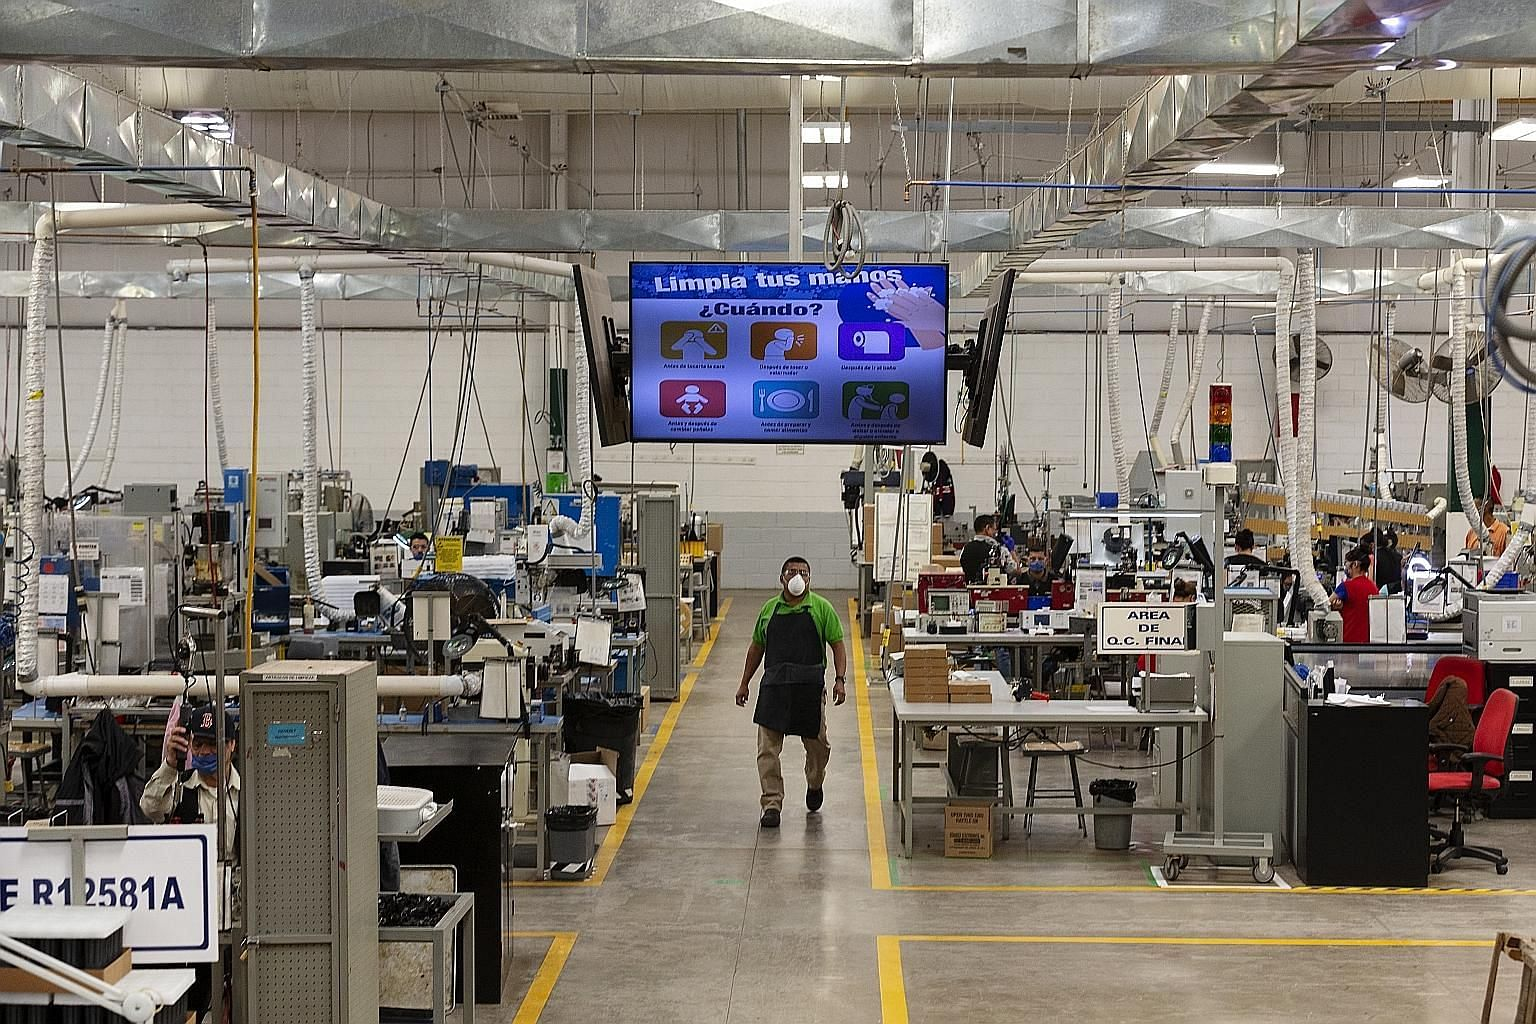 The Standex Electronics manufacturing facility in Sonora, Mexico amid the Covid-19 pandemic, on Monday. Companies in the United States are rushing to find new manufacturing partners in Mexico. The Monetary Authority of Singapore believes the US-Mexic